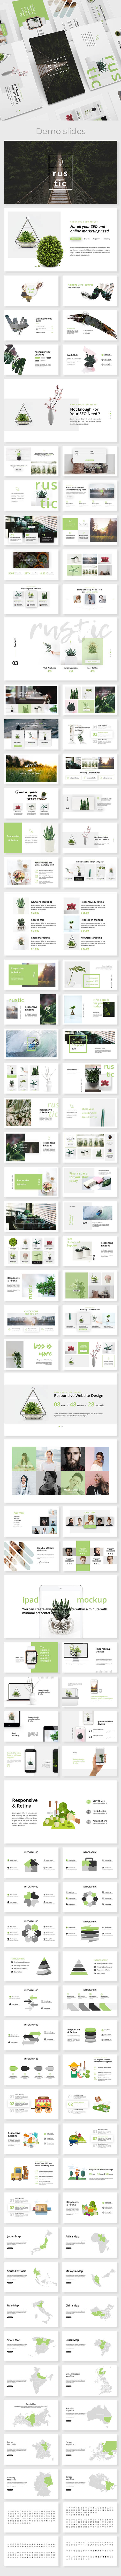 Rustic Minimal Google Slide Template - Google Slides Presentation Templates